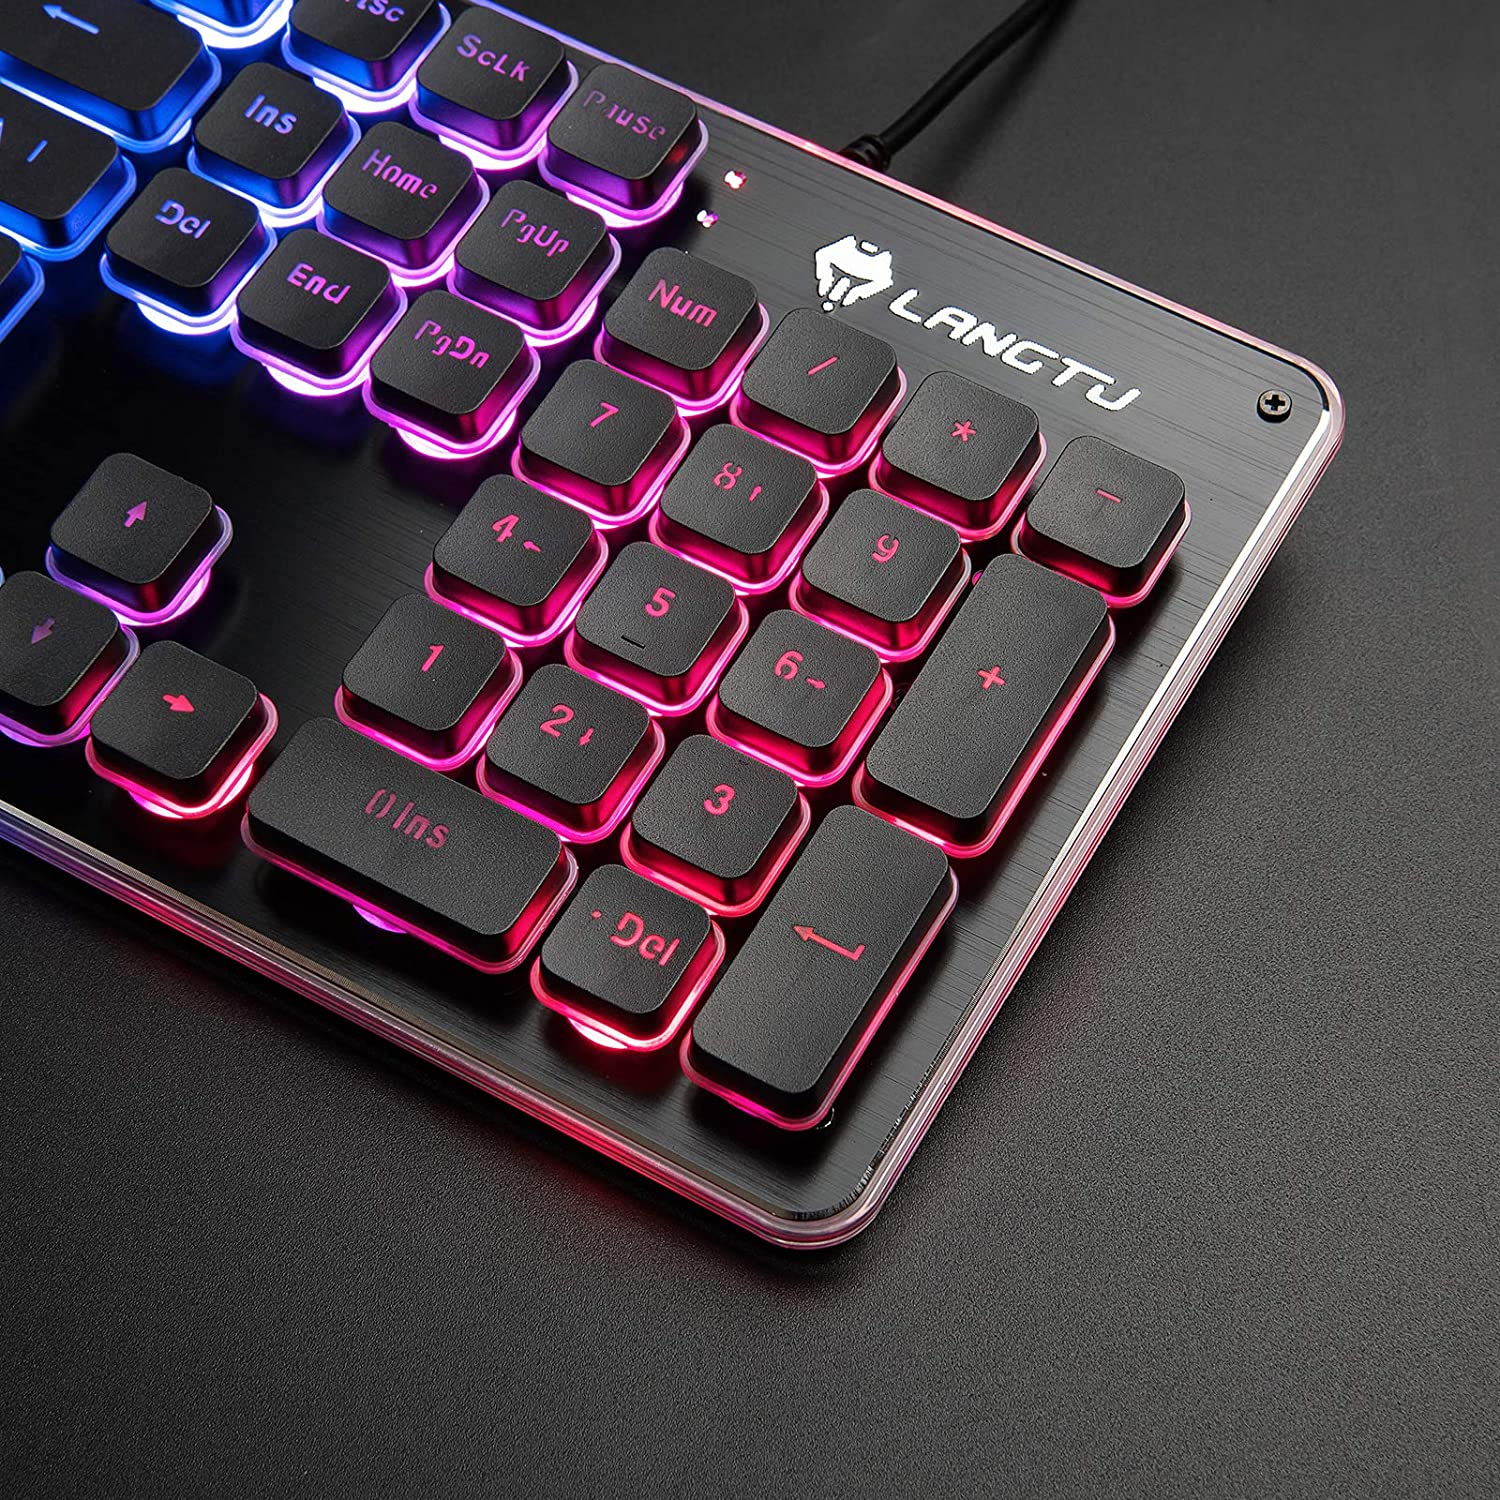 LANGTU Gaming Keyboard and Mouse Combo with Large Mouse Pad, Colorful LED Backlit Quiet Keyboard for Study, All-Metal Panel USB Wired 25 Keys ...